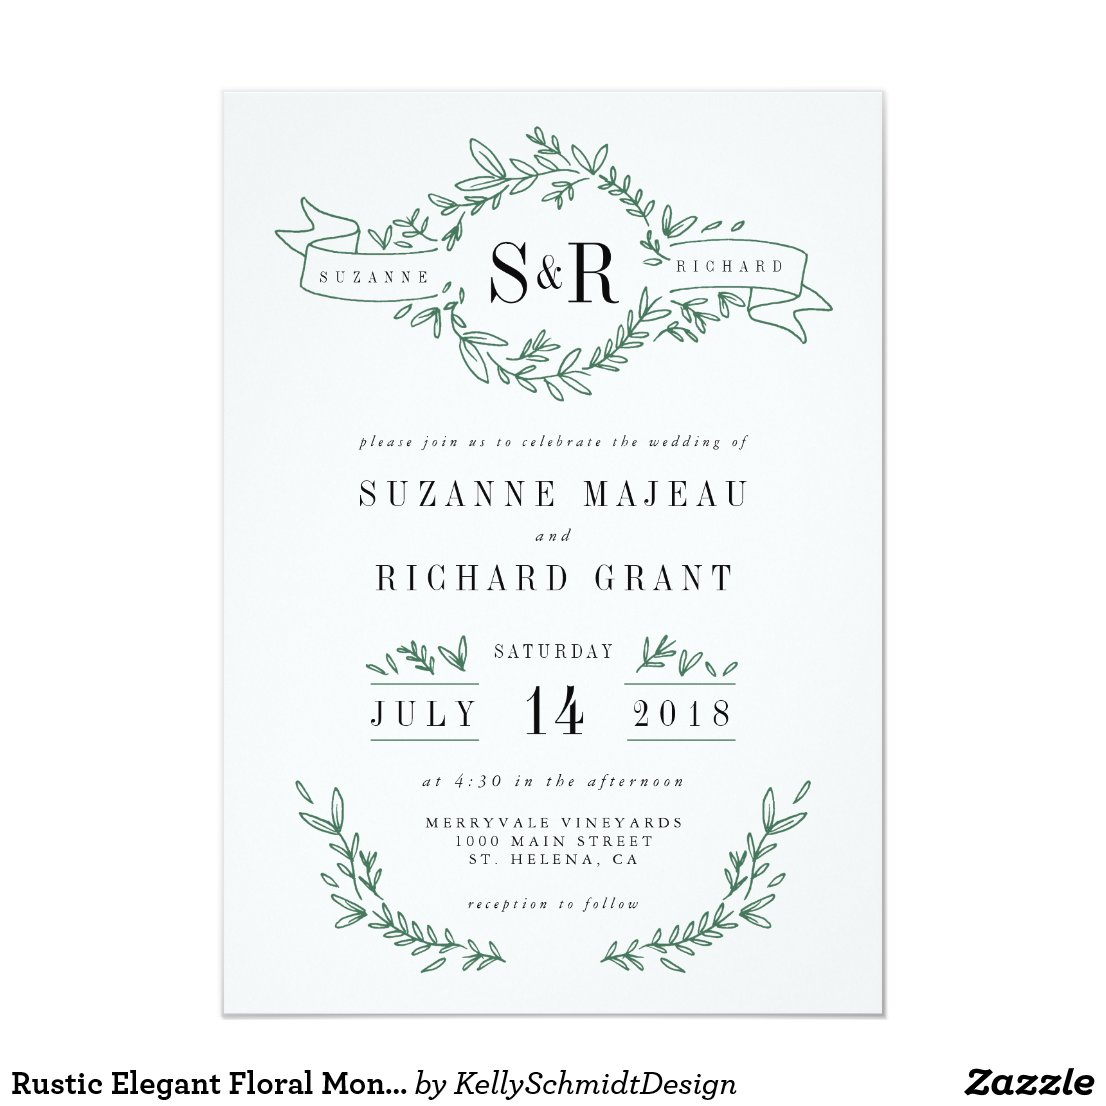 Rustic Elegant Floral Monogram Wedding Invitations